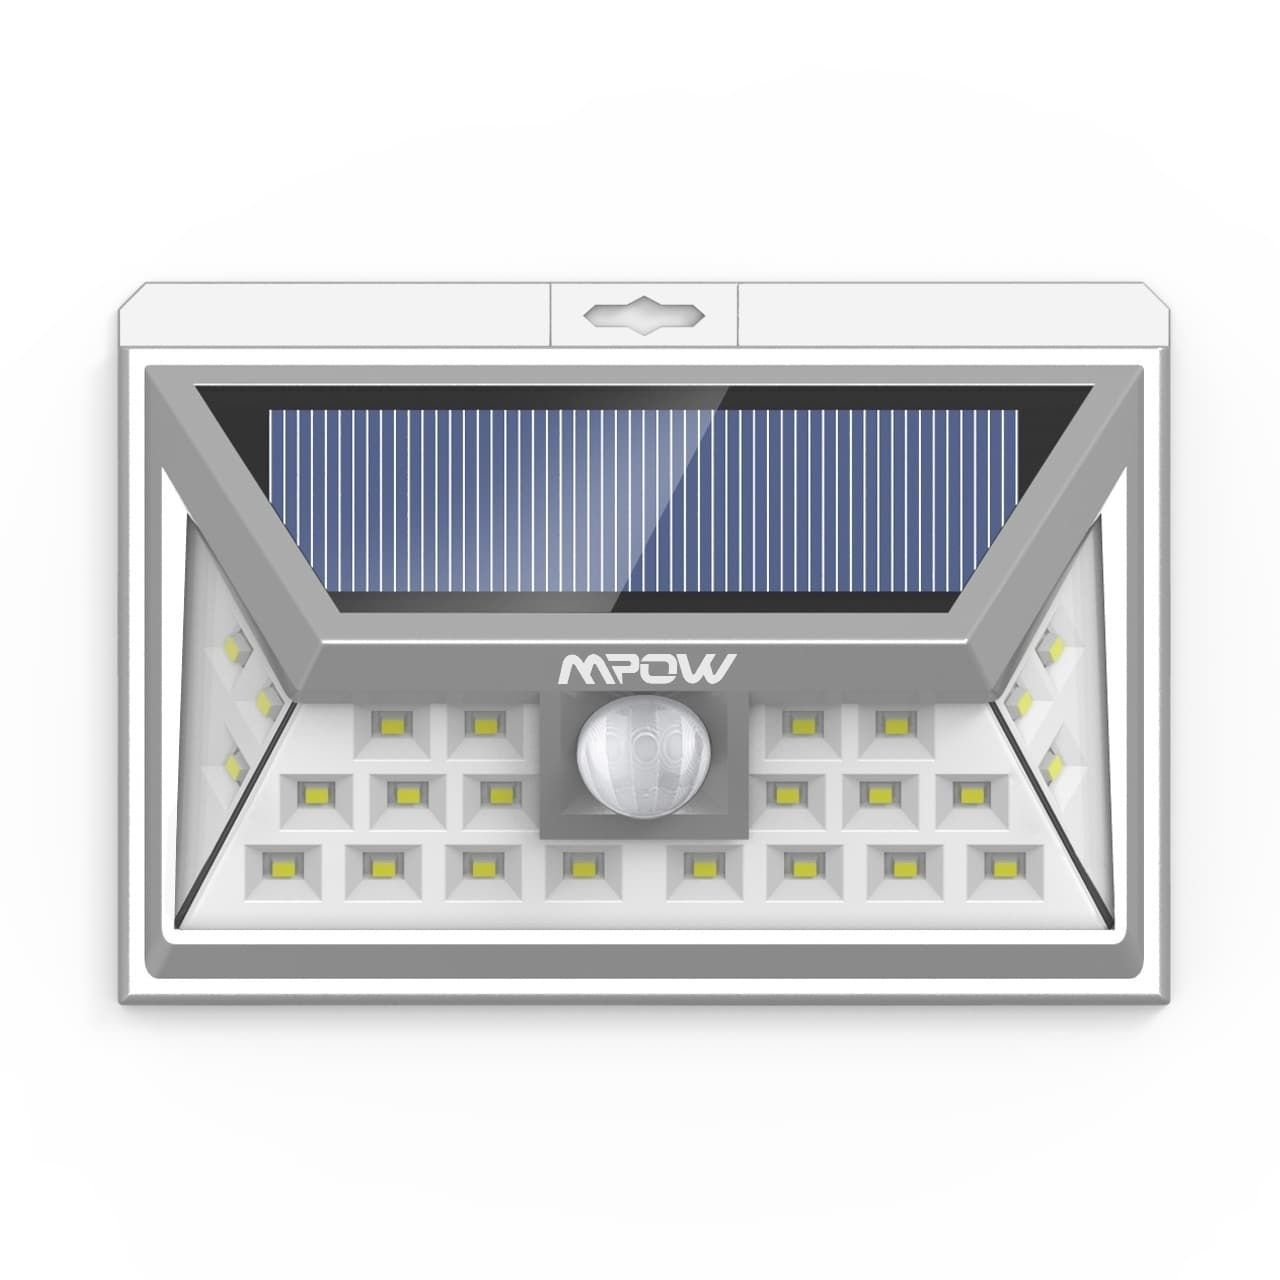 Mpow 24led Wireless Waterproof Outdoor Solar Light With Wide Angle Shadow Sensor Alarm Black White Abs